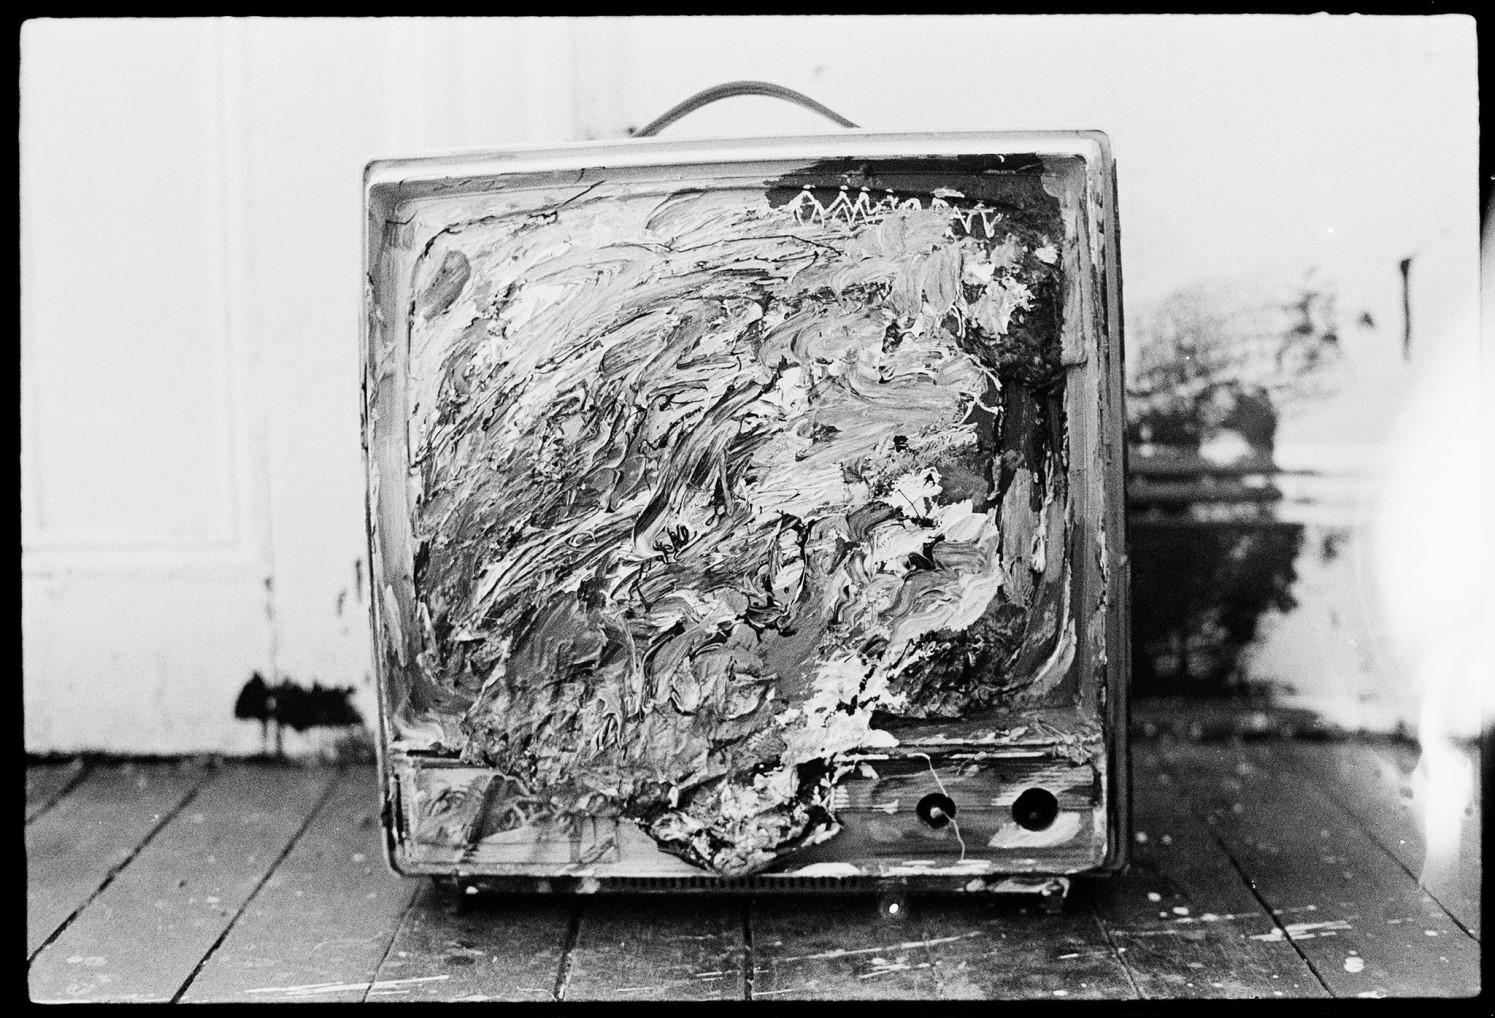 Jean Michel Basquiat Painted Many Items Around The Shared Apartment Including This Television Set